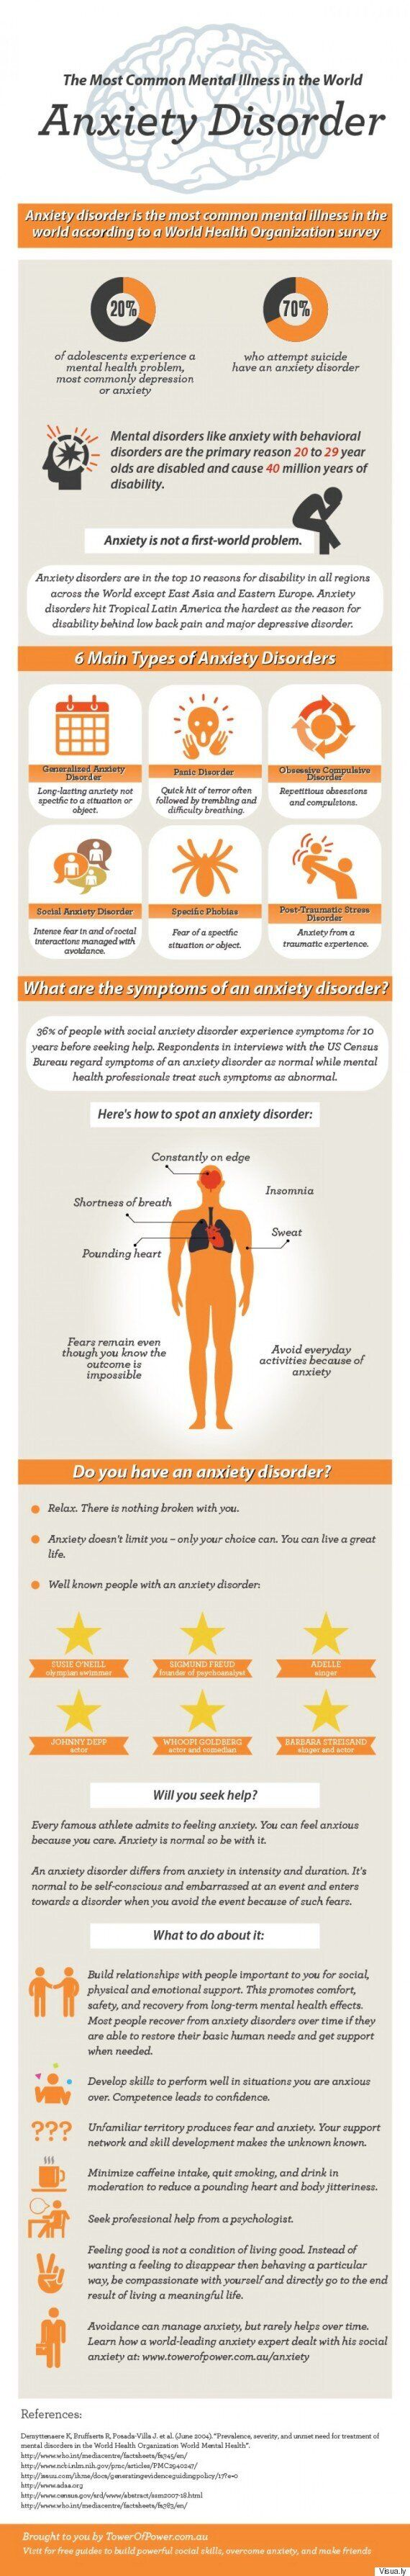 Anxiety Disorder Symptoms And Other Things You Need To